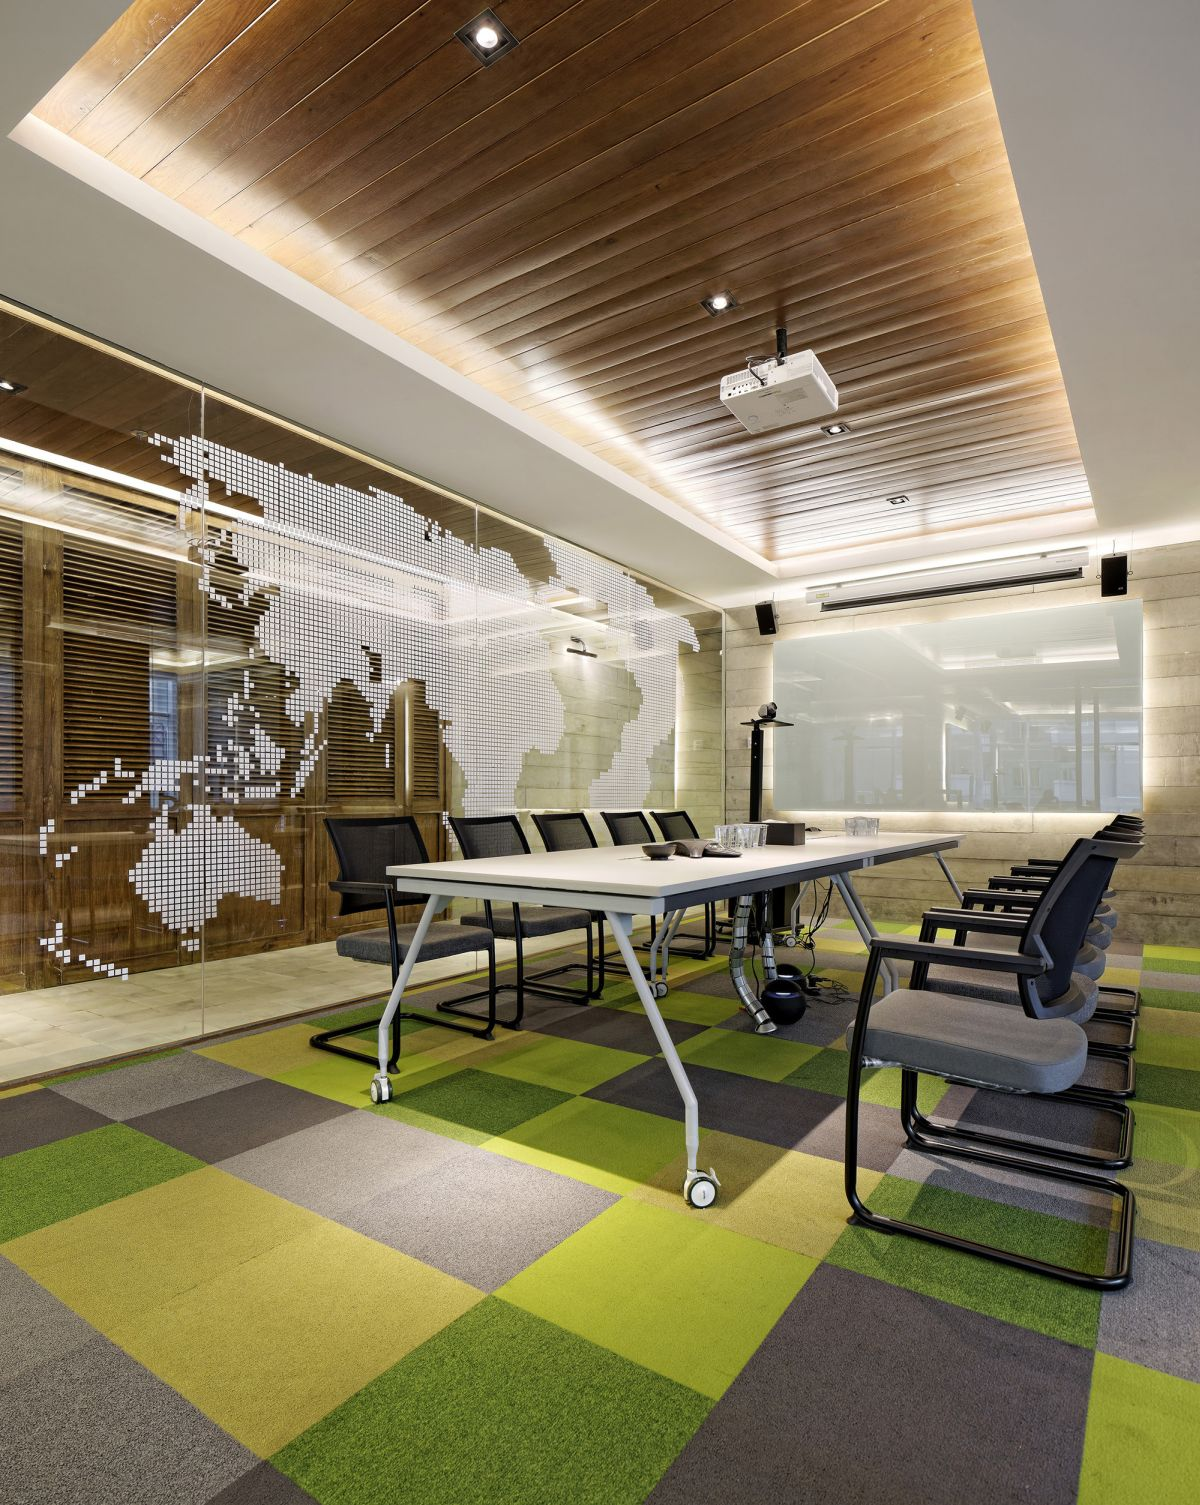 Inspiring office meeting rooms reveal their playful designs for Meeting room interior design ideas